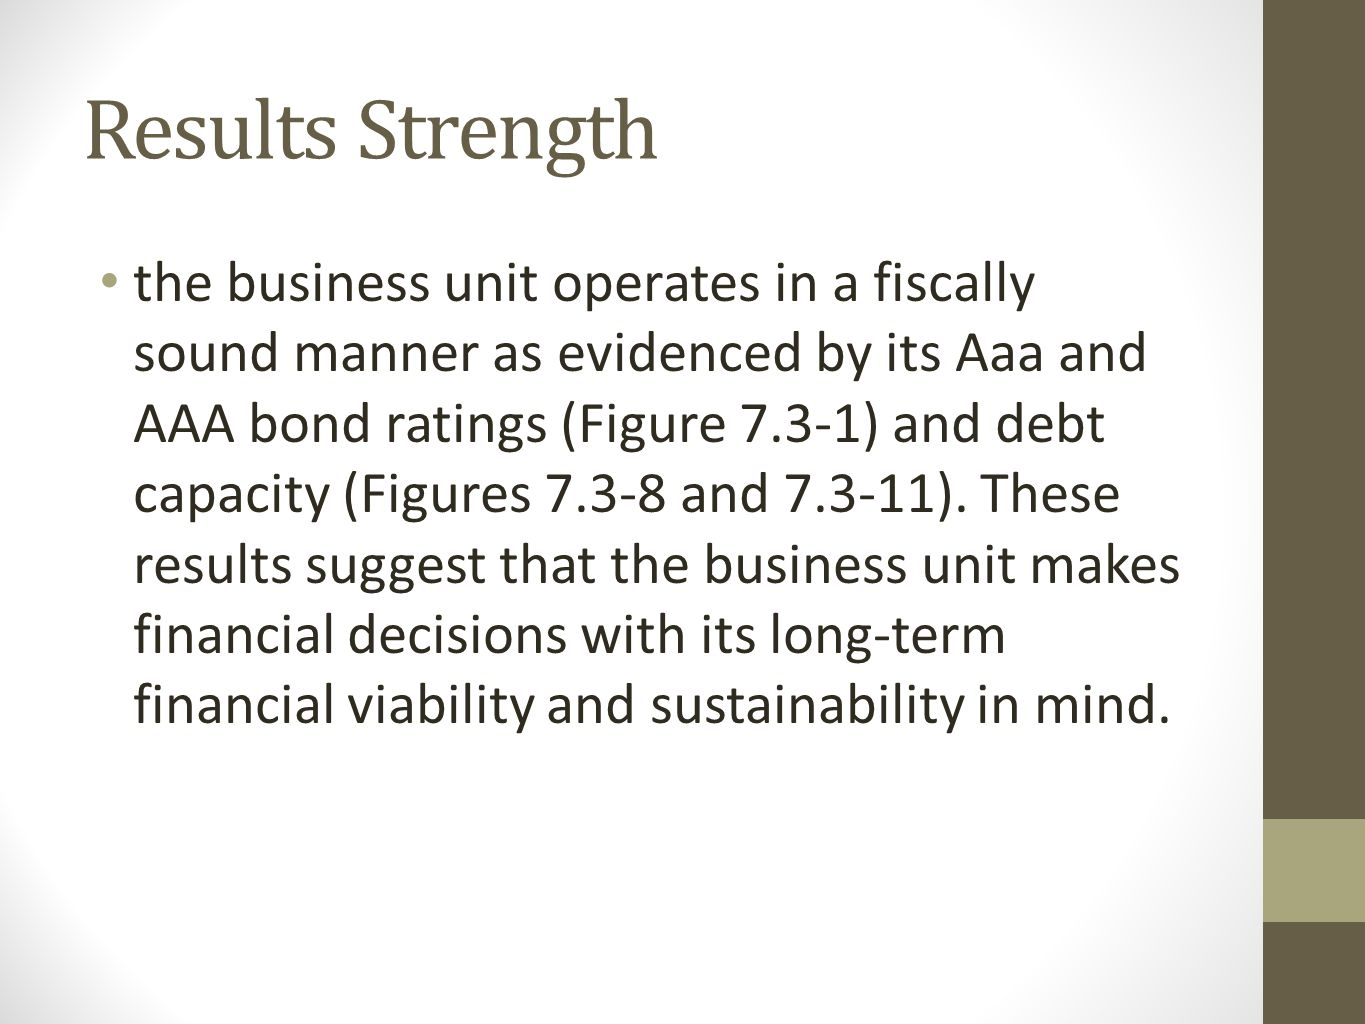 Results Strength the business unit operates in a fiscally sound manner as evidenced by its Aaa and AAA bond ratings (Figure 7.3-1) and debt capacity (Figures 7.3-8 and 7.3-11).